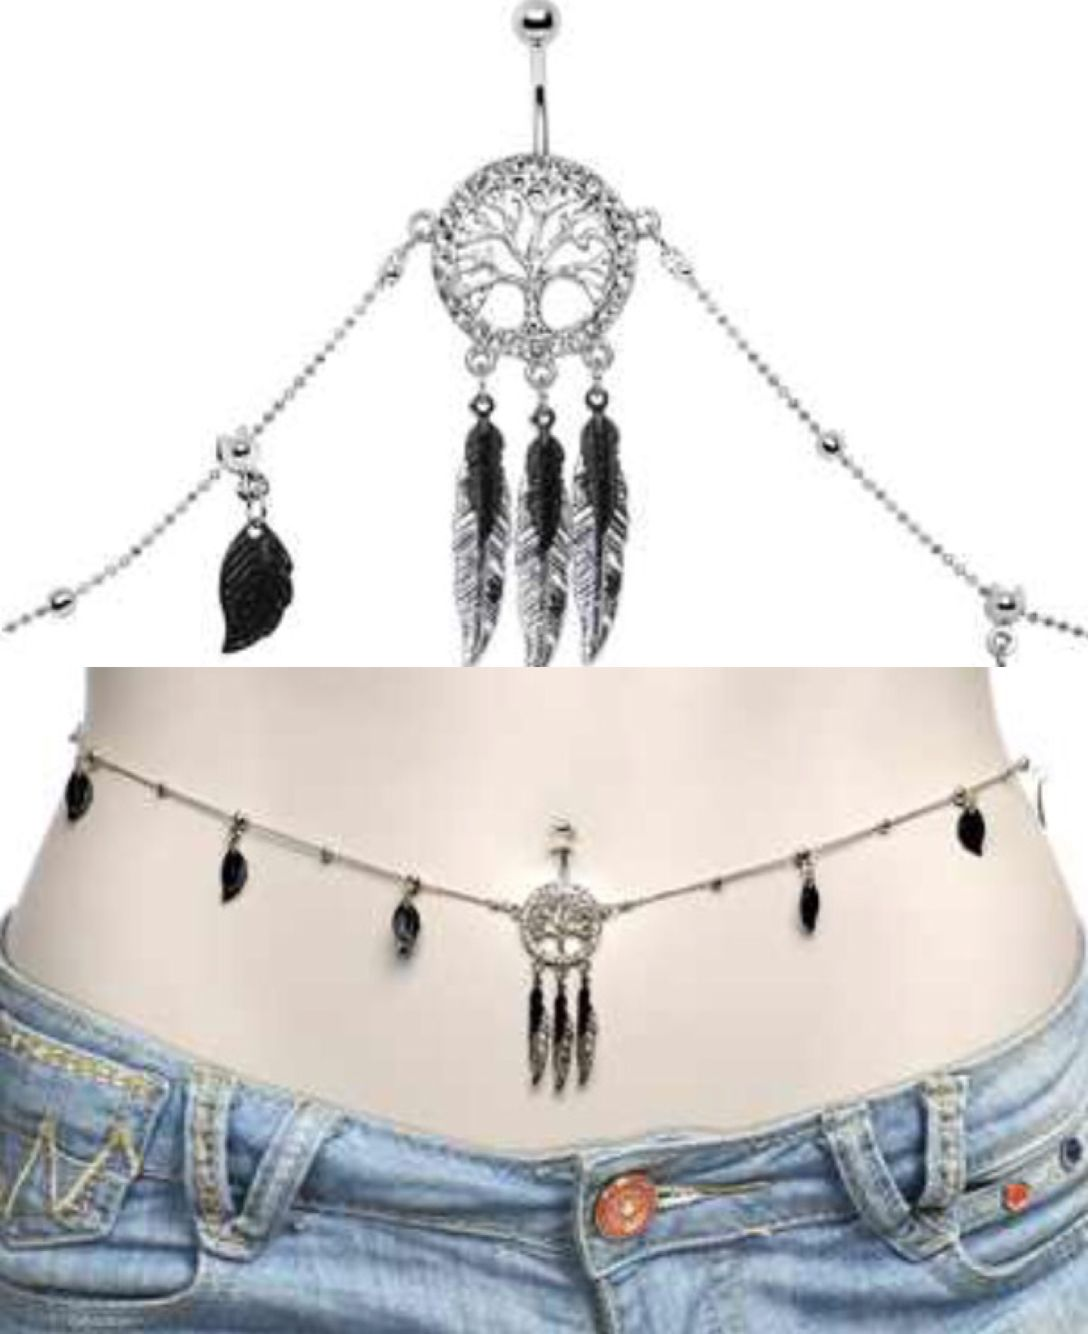 Belly Chain Absolutely Gorgeous Belly Chain Piercings For Girls Unique Jewelry